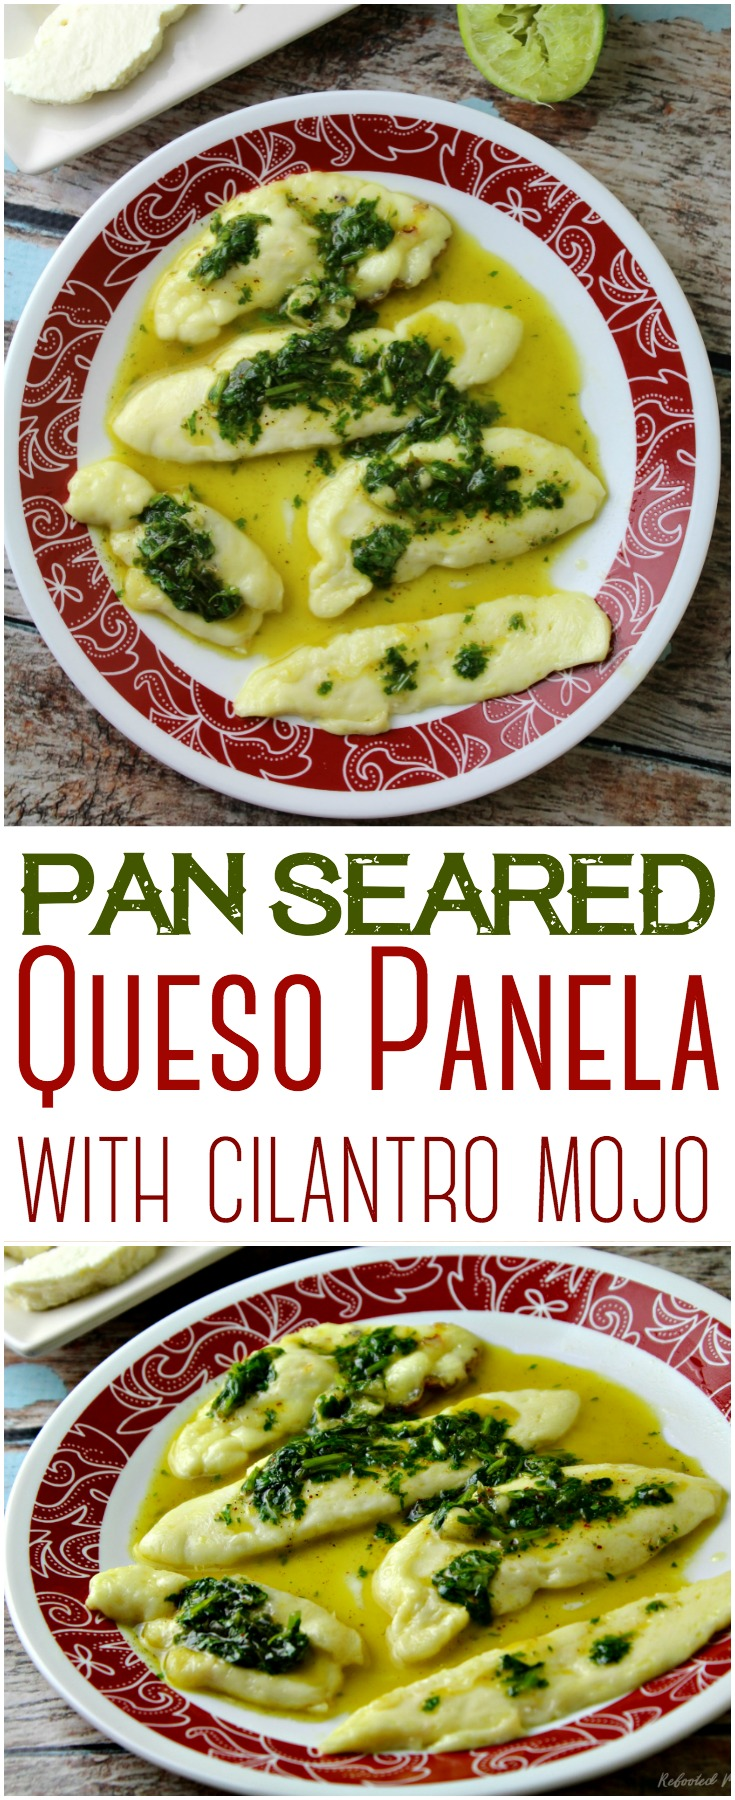 Pan Seared Queso Panela drizzled with a deliciously fragrant and rich cilantro mojo sauce that combines simple ingredients to make an easy appetizer!